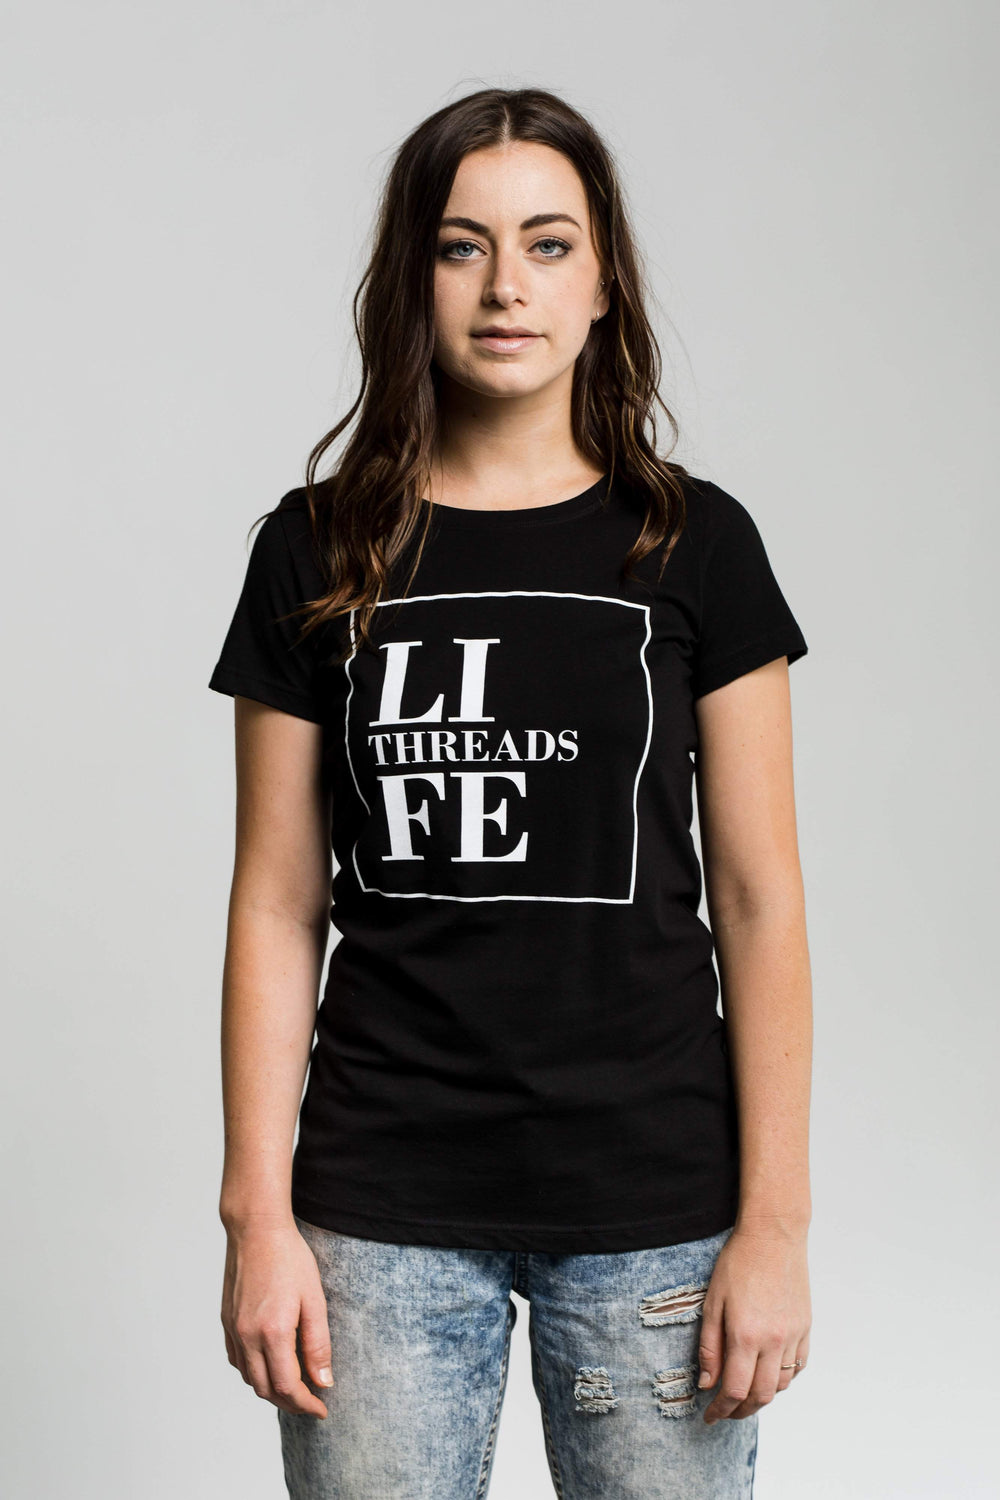 LT Square - Fairtrade & Organic T-Shirt-Fair Trade Clothing by Life Threads